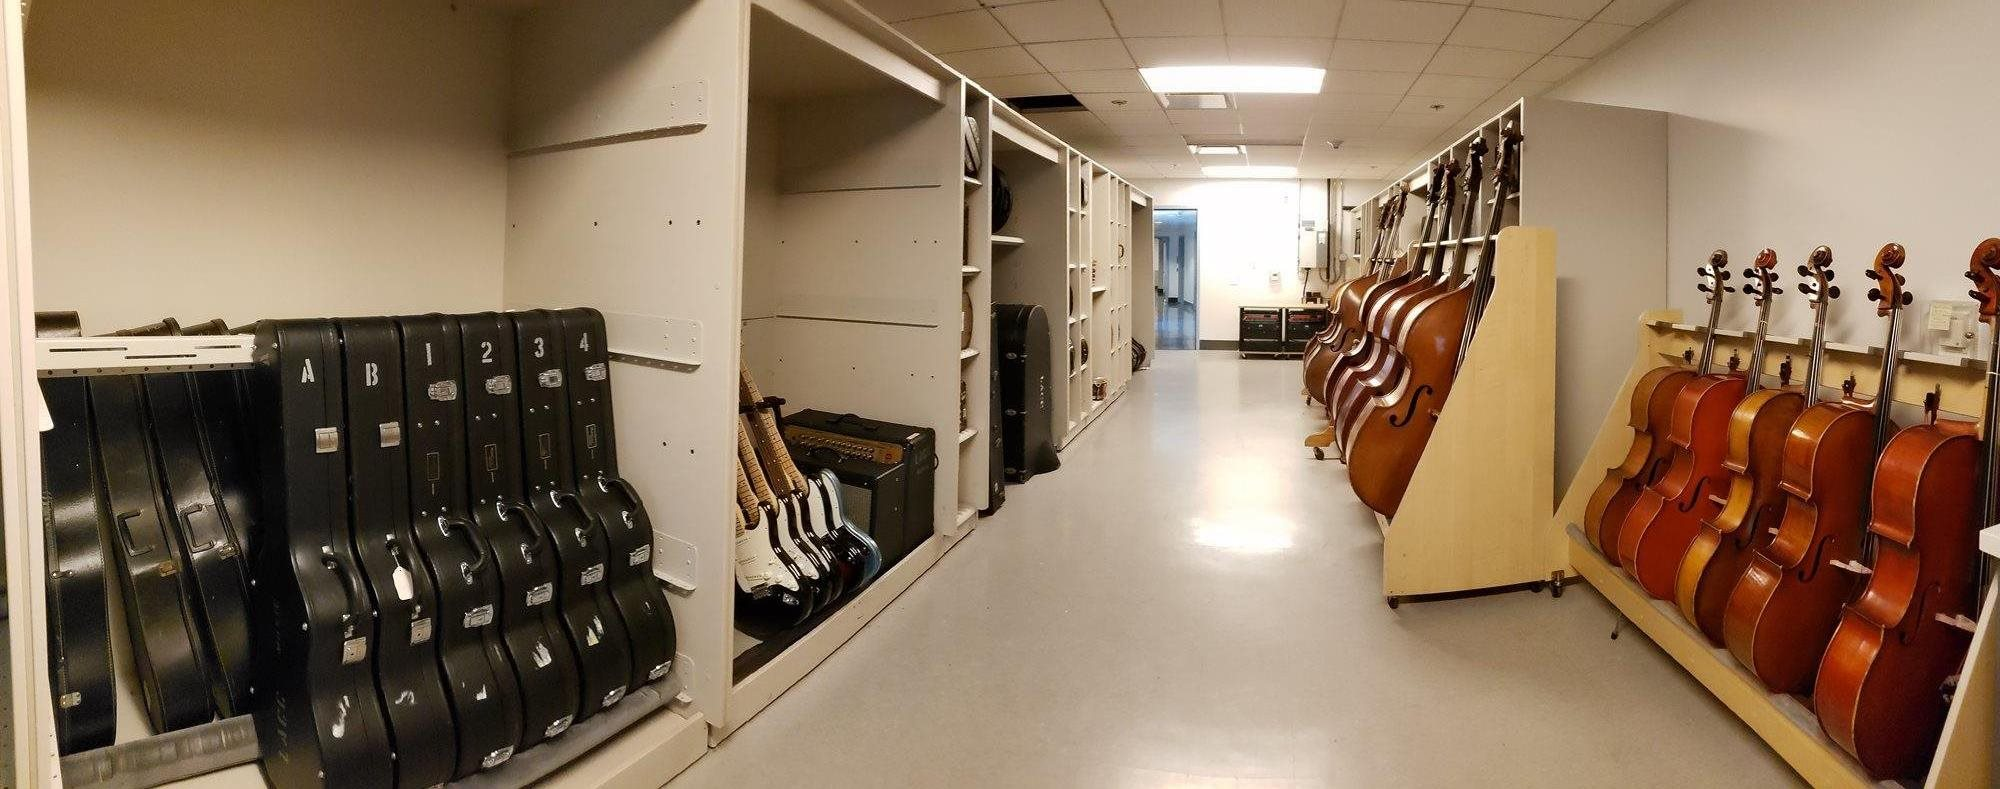 A long room, the walls lined with basses, cellos, guitars, and wind and brass instrument cases.